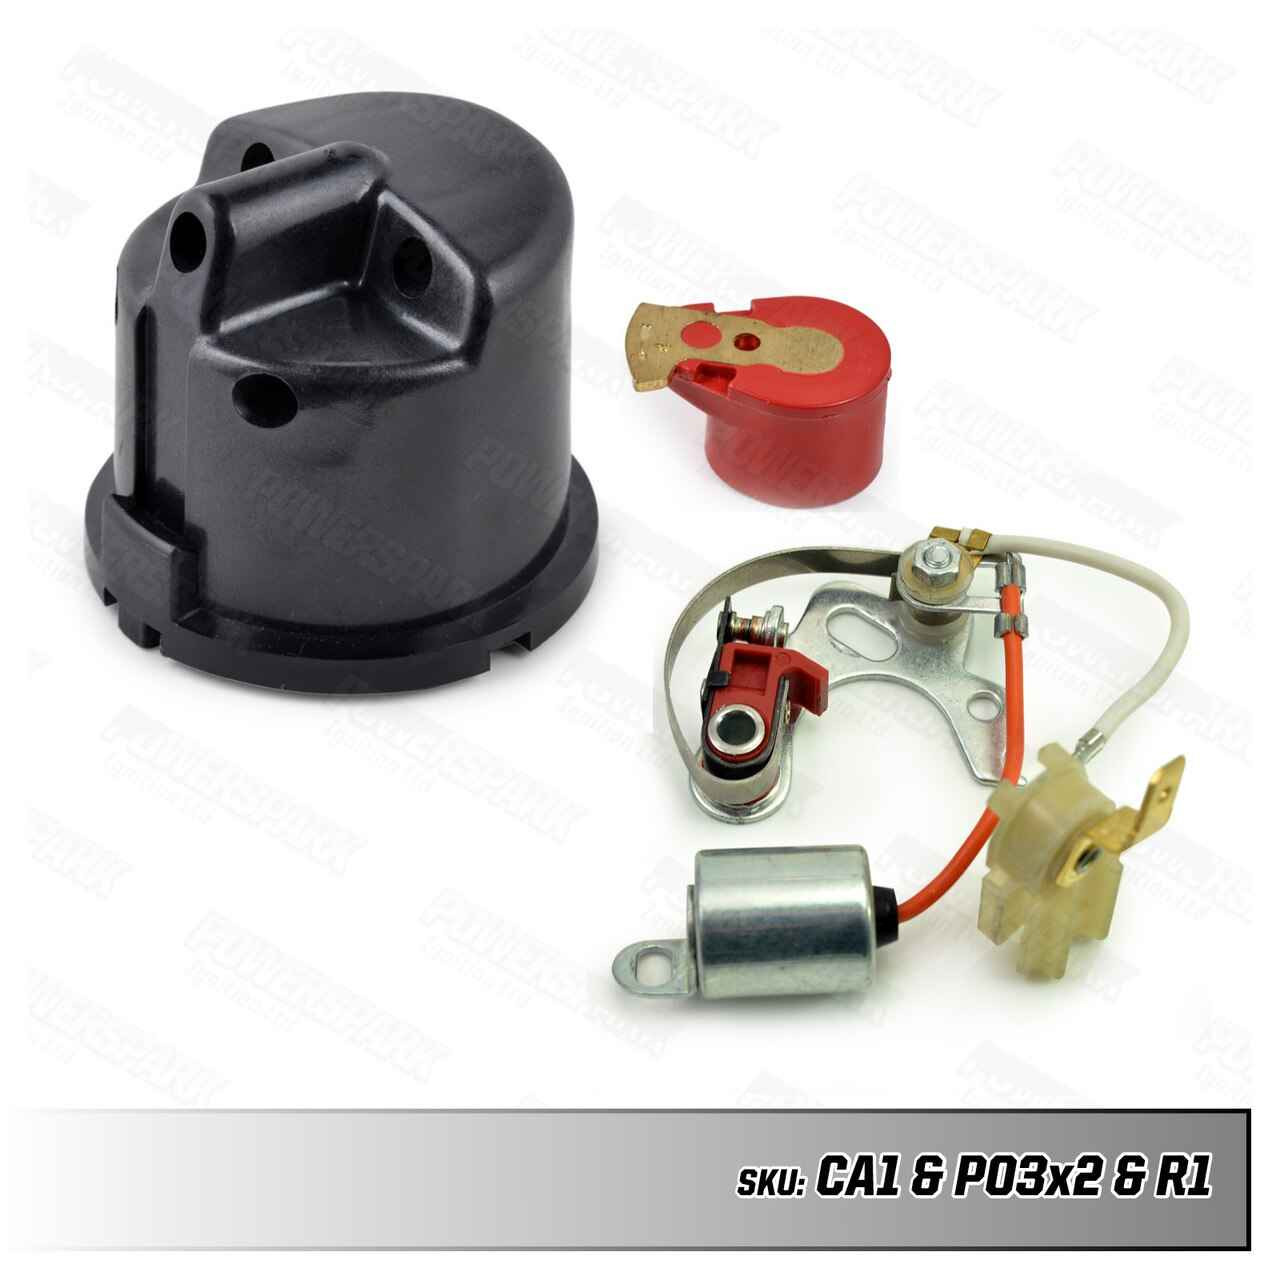 Lucas Lucas 25D Distributor Upgrade Kit with 2 sets of points